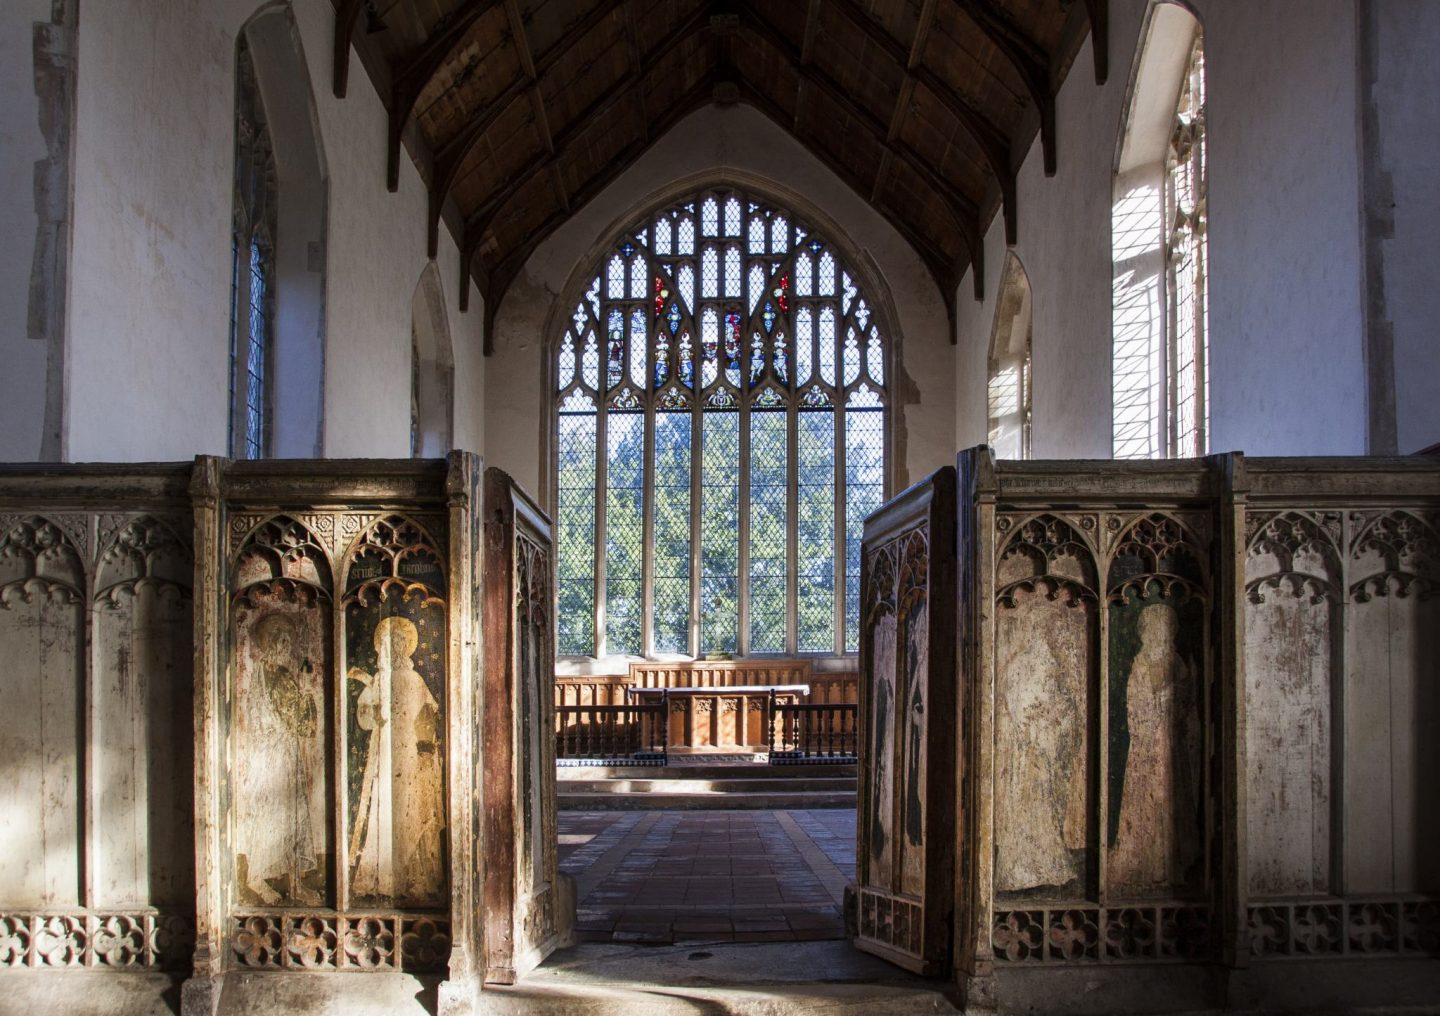 the chancel and chancel screen of Salle church.